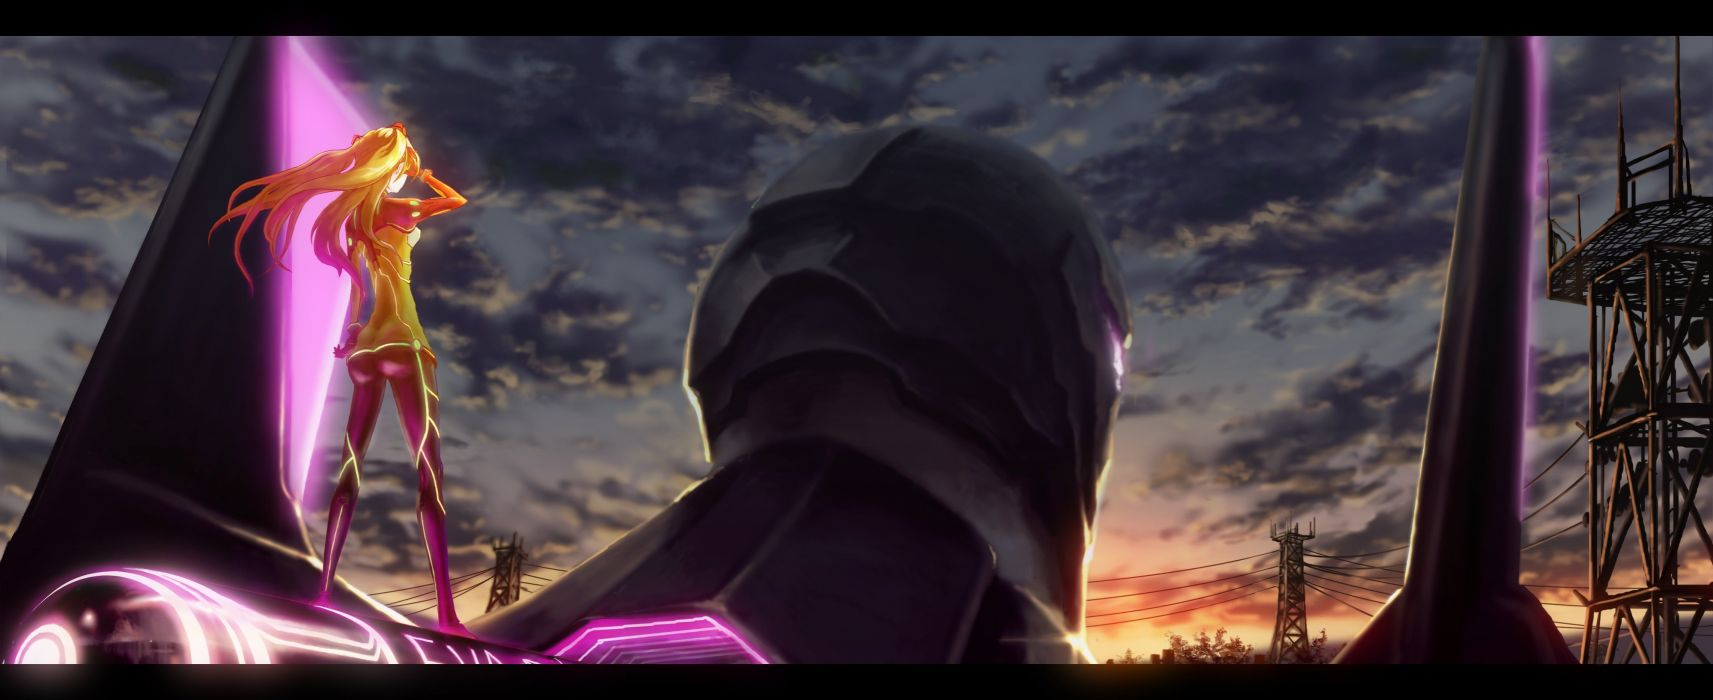 blondes sunset mecha Neon Genesis Evangelion Asuka Langley Soryu skyscapes wallpaper